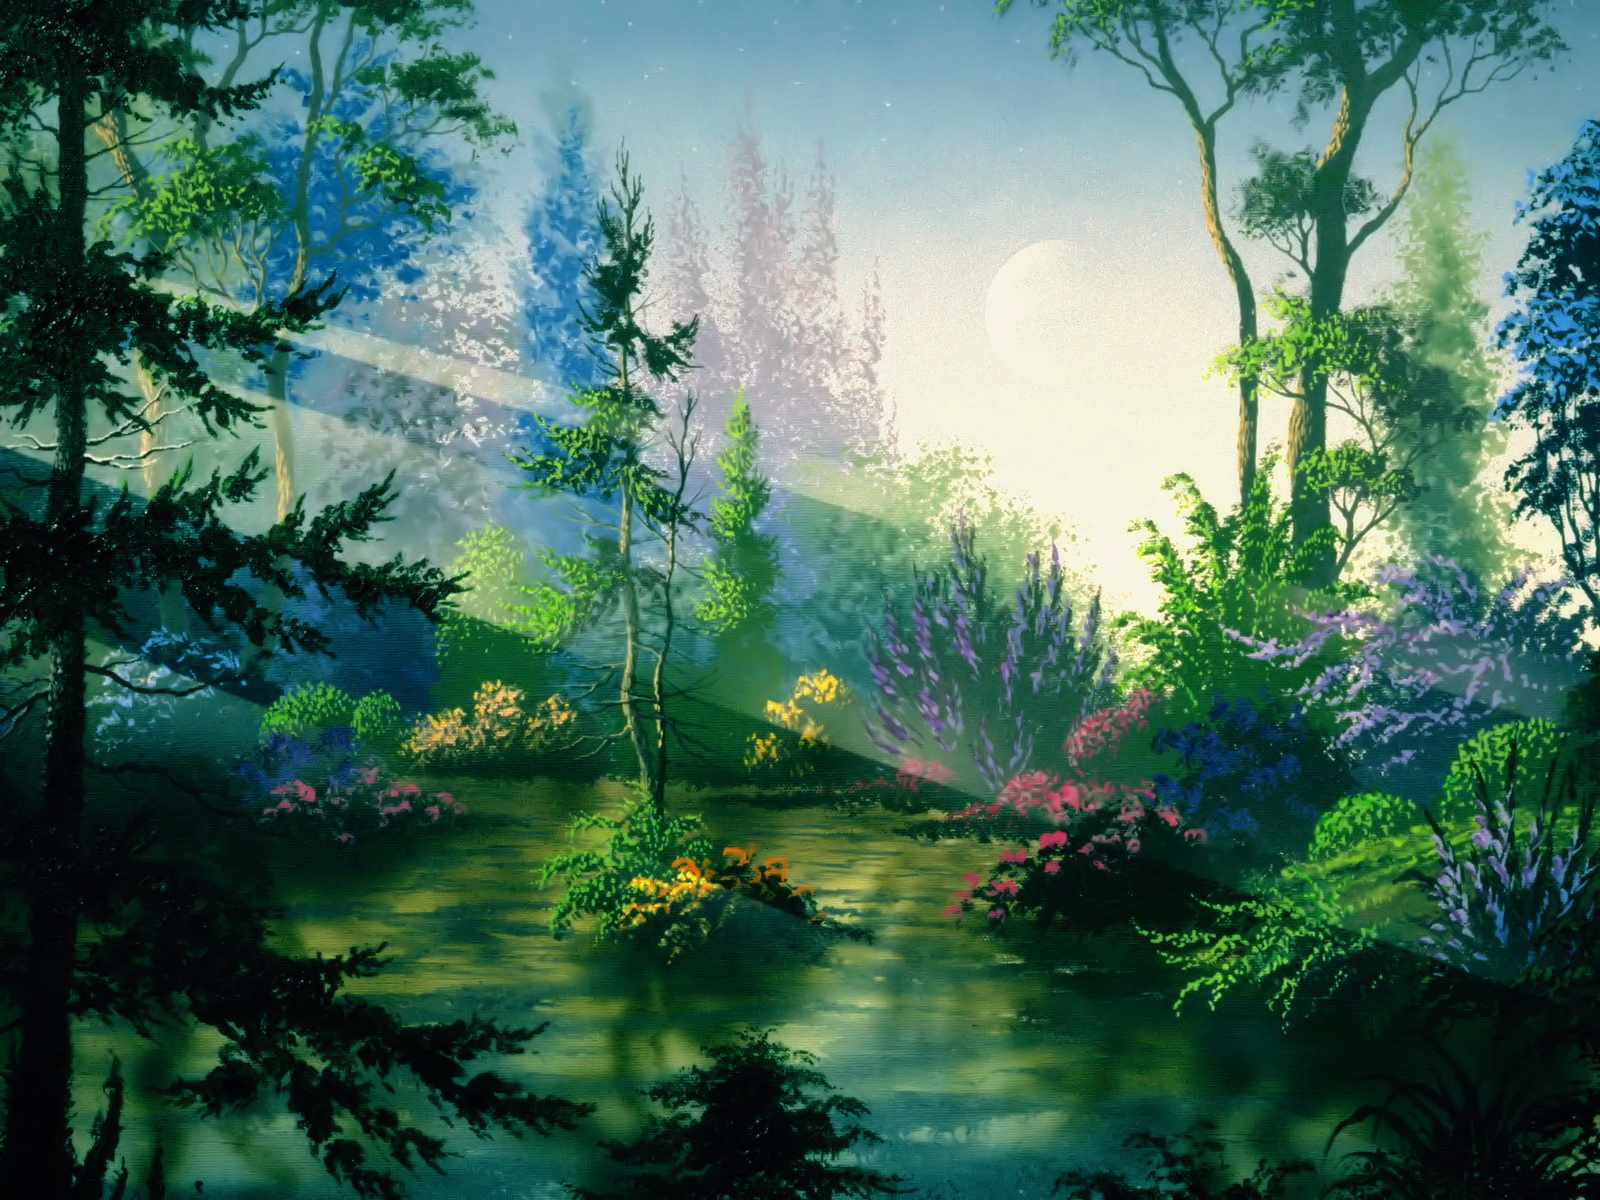 Your feelings that are associated with places? Fantasy-forest-fantasy-27116261-1600-1200